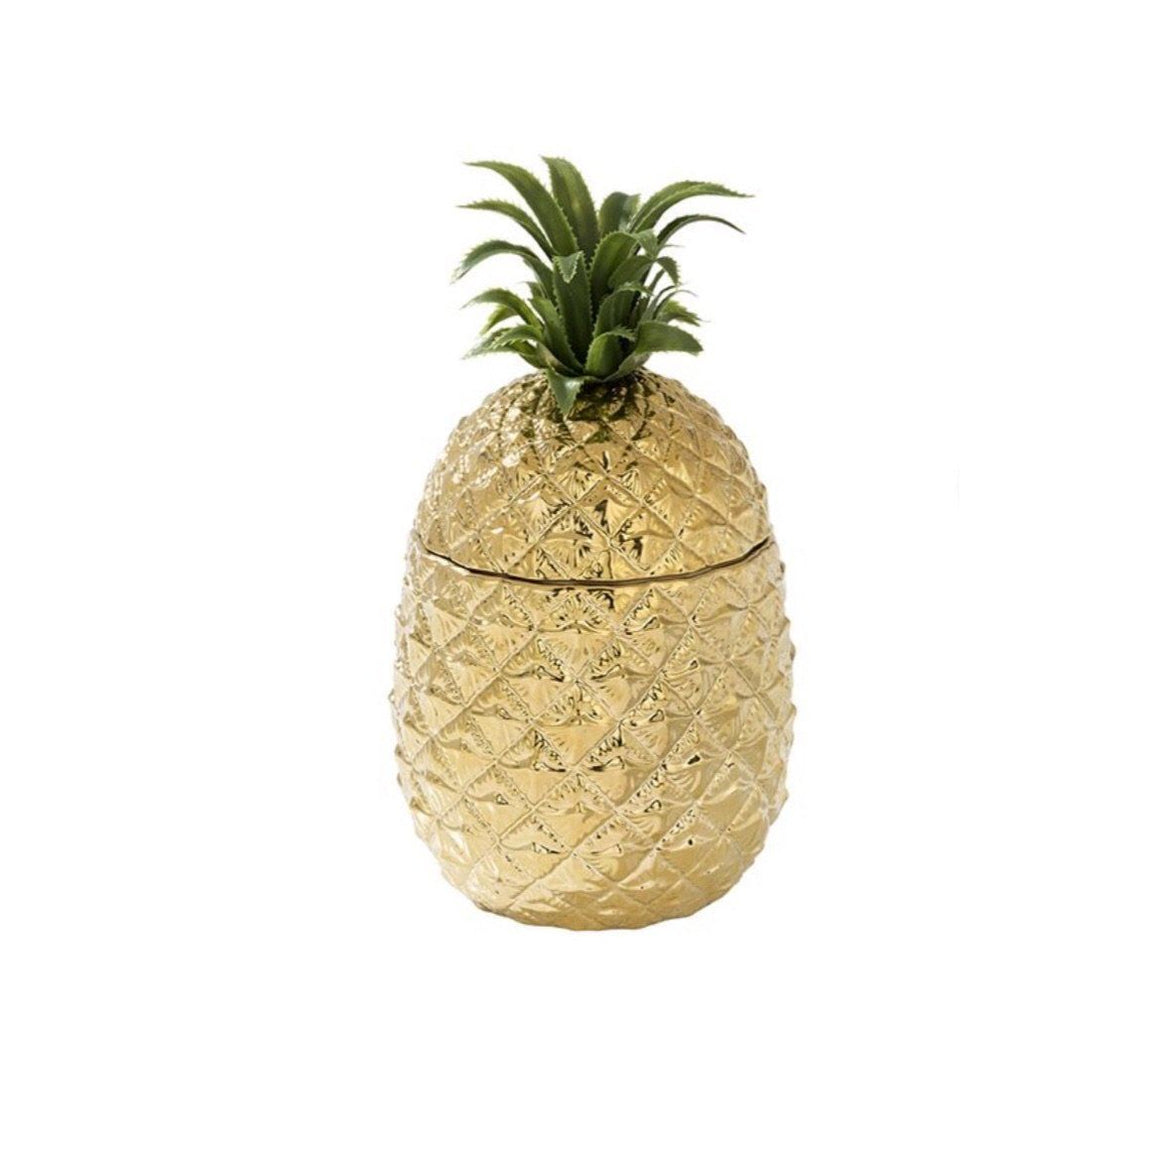 DRINKWARE - EMPORIUM PINEAPPLE ICE BUCKET, Drinkware, TALKING TABLES - Bon + Co. Party Studio